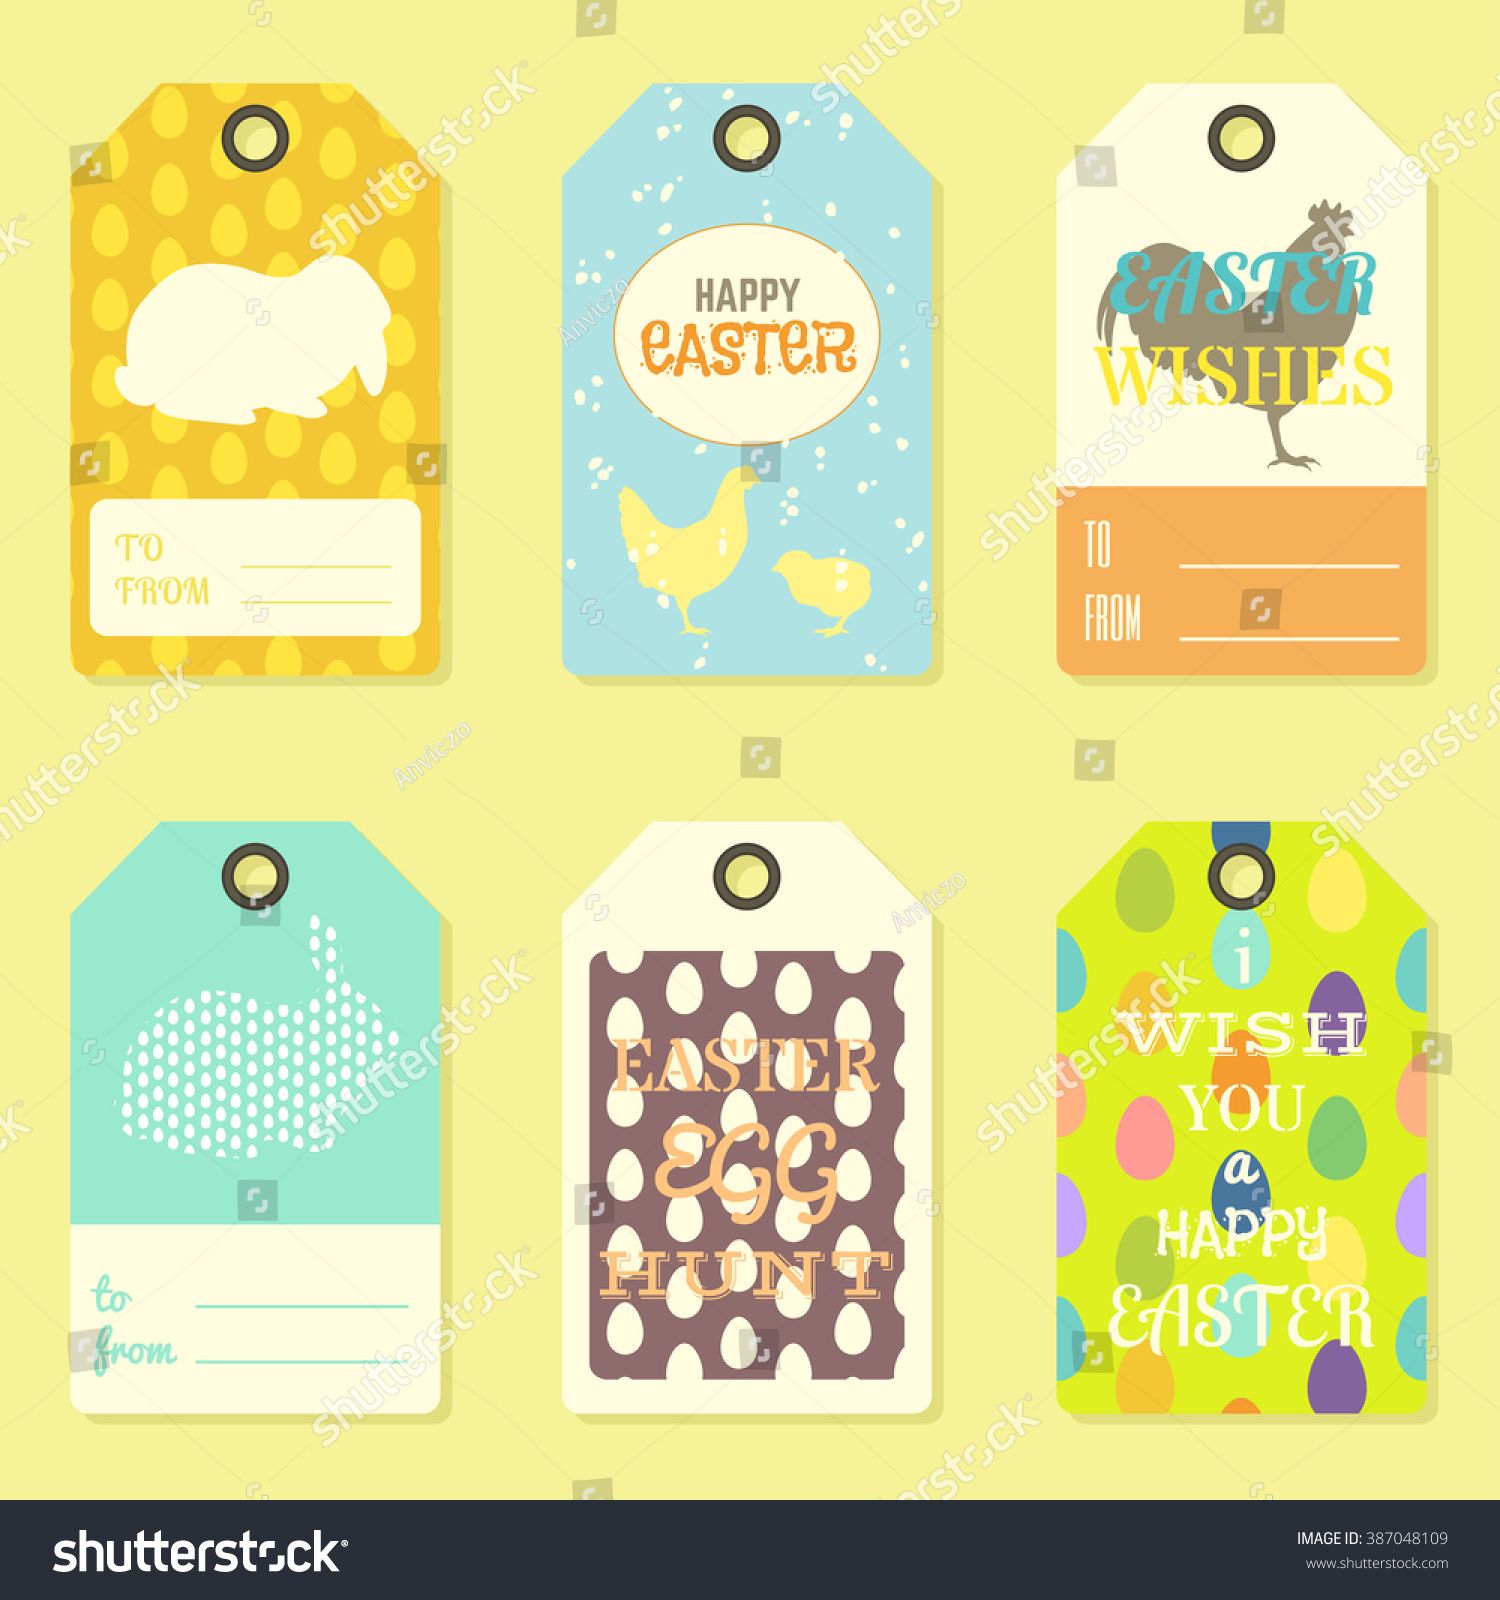 Easter gift tag template merry christmas and happy new year 2018 easter gift tag template negle Images